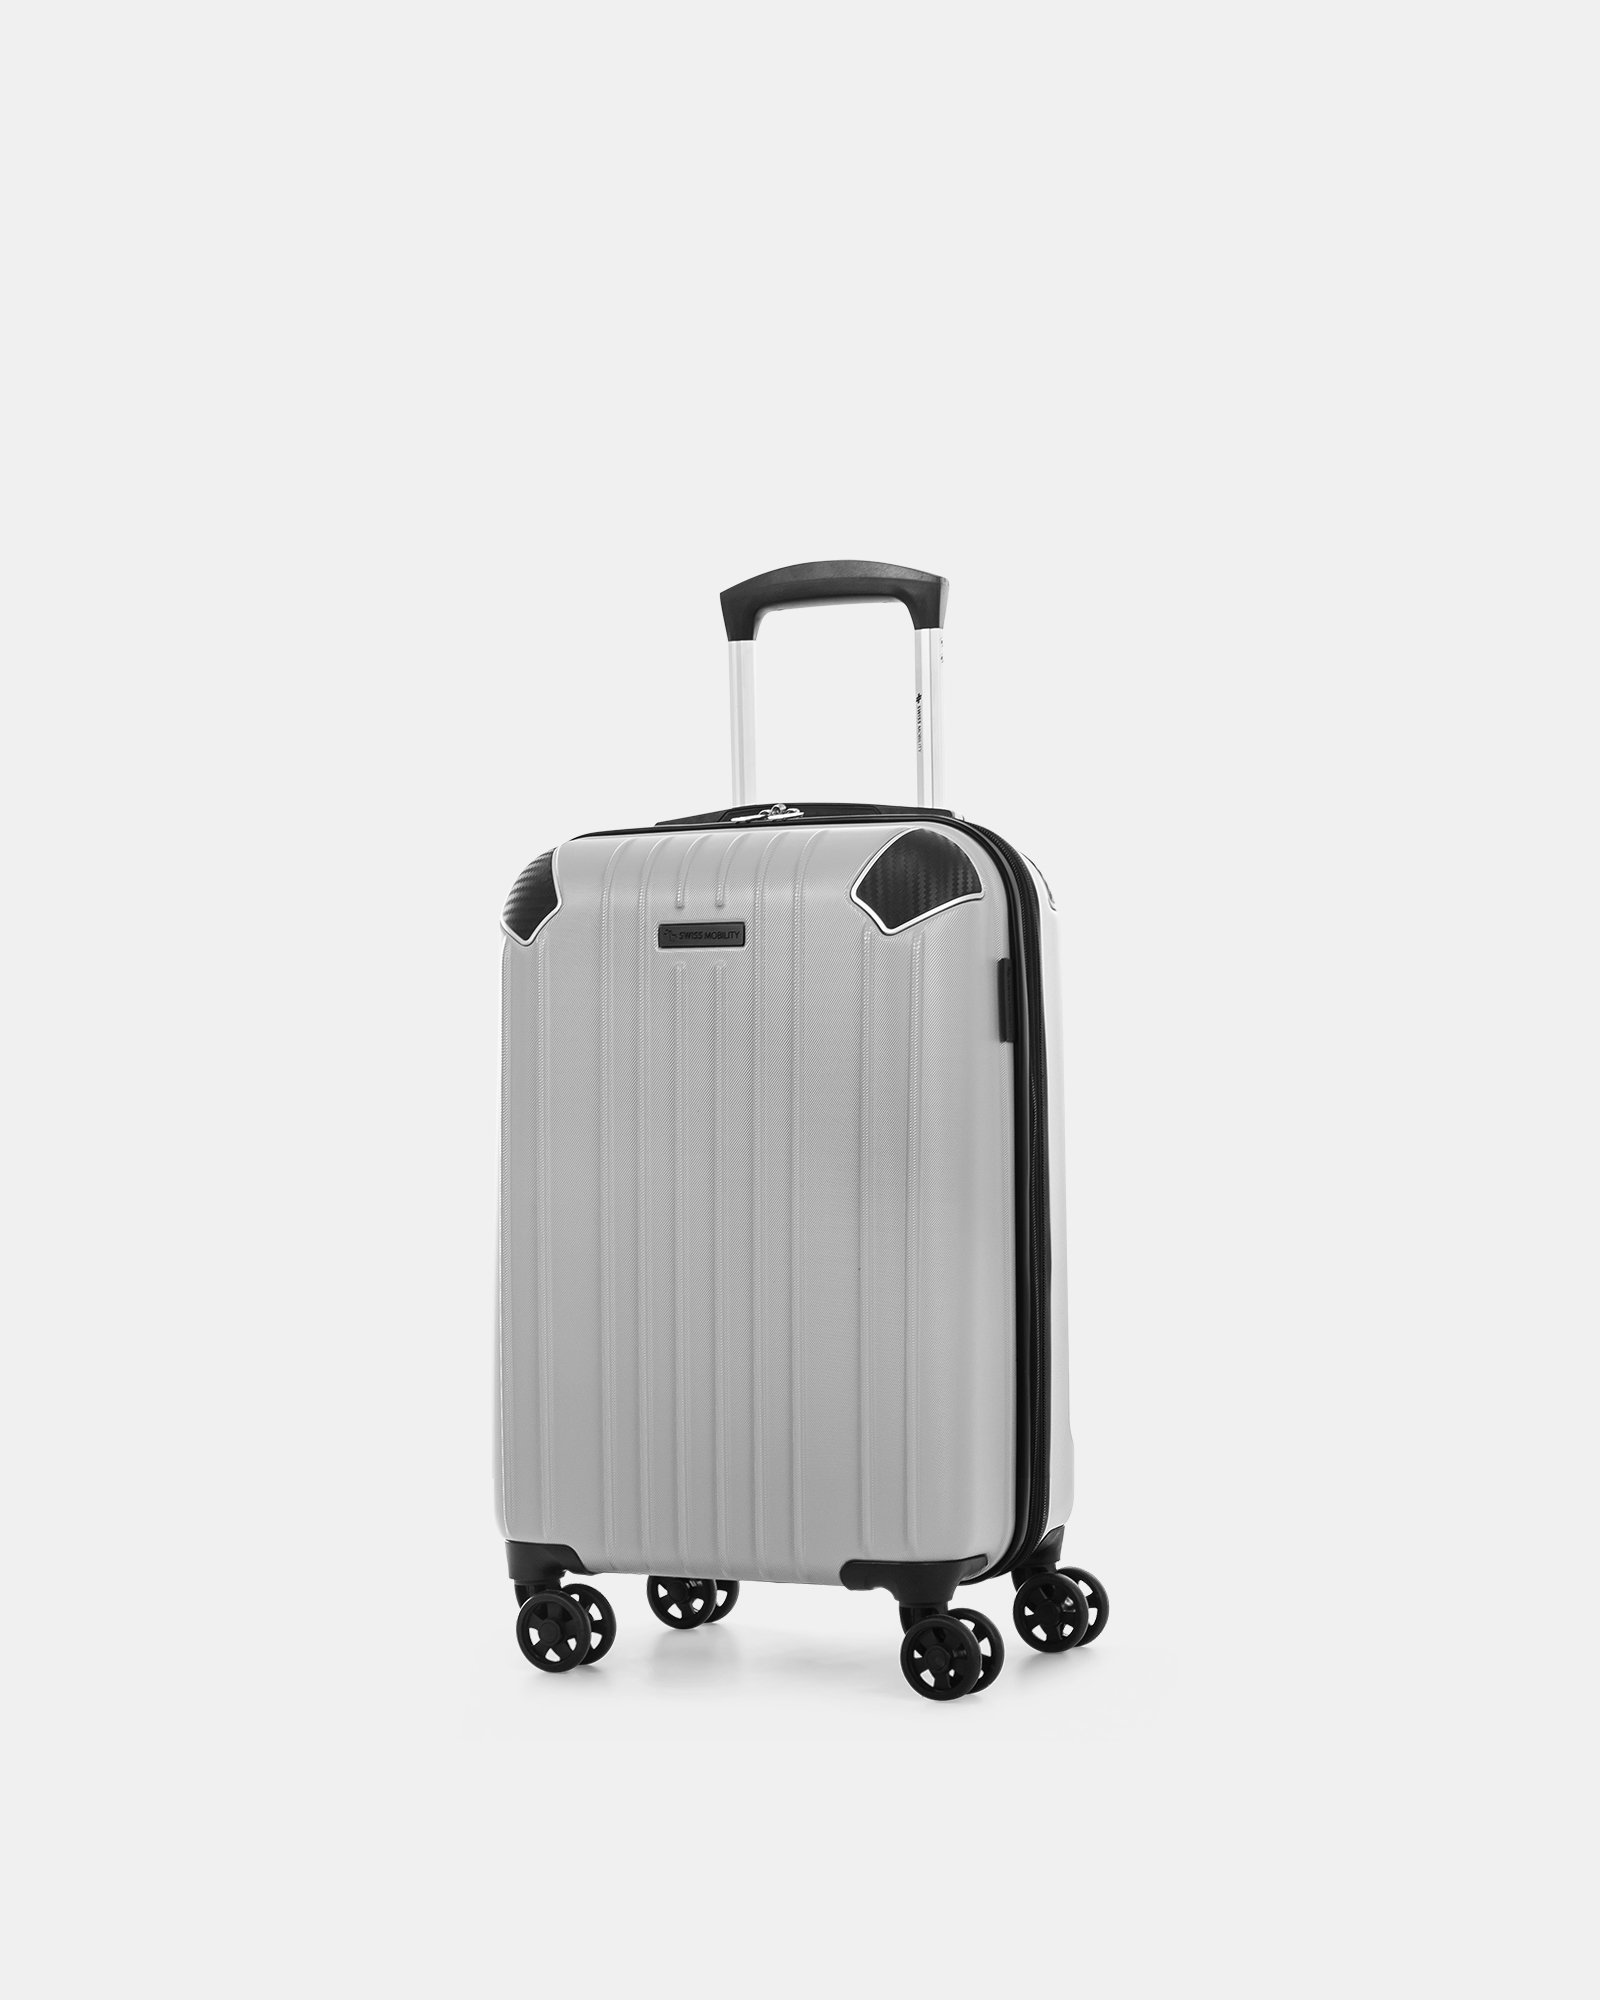 """PVG - 21.5"""" LIGHTWEIGHT HARDSIDE CARRY-ON - SILVER - Swiss Mobility - Zoom"""